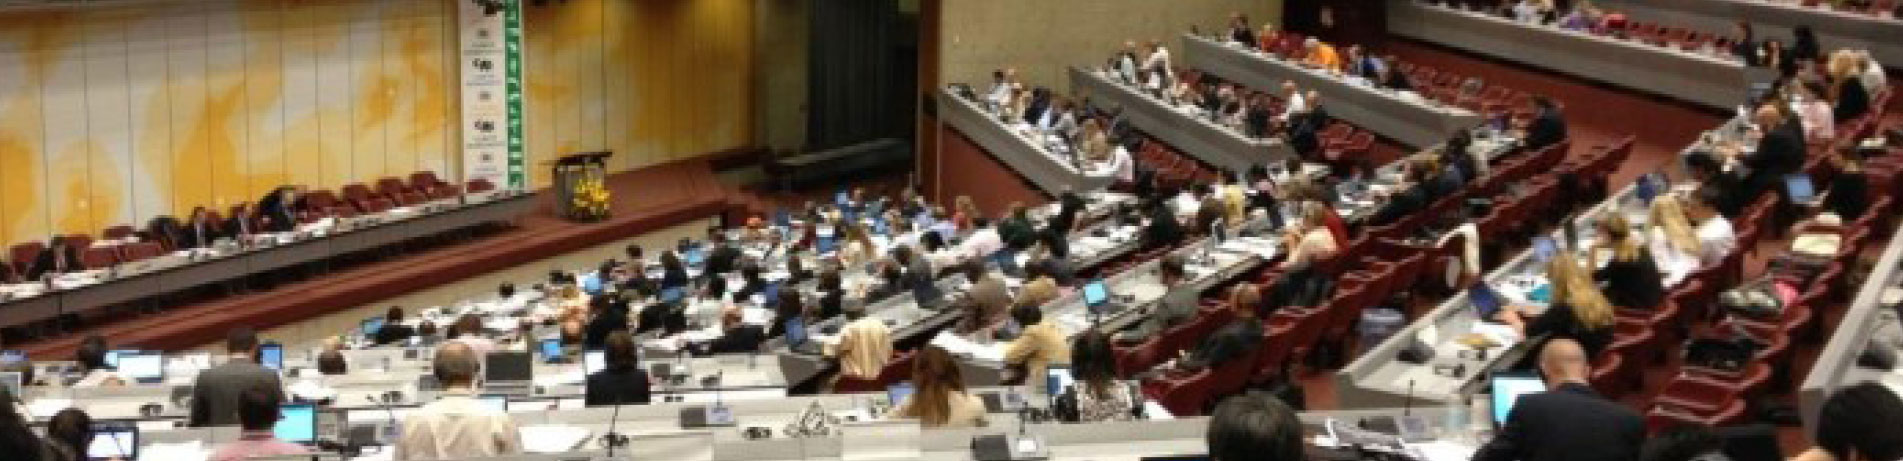 65th meeting of the Standing Committee to the Convention on International Trade in Endangered Species (CITES), Geneva